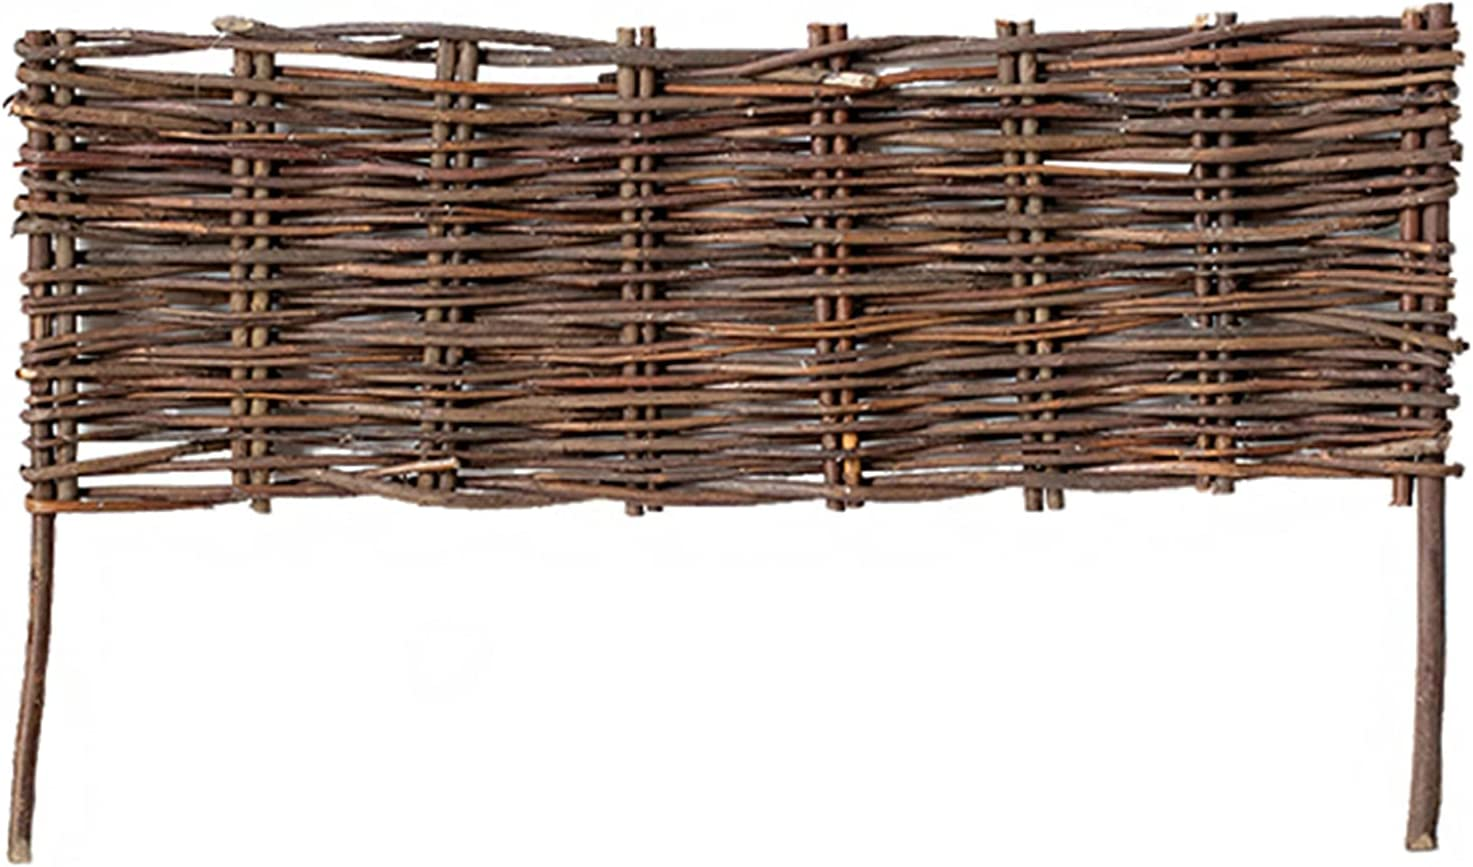 NBSY High order Wicker Woven Fences ×4 Fence Fl Small Wood 2021new shipping free shipping Garden